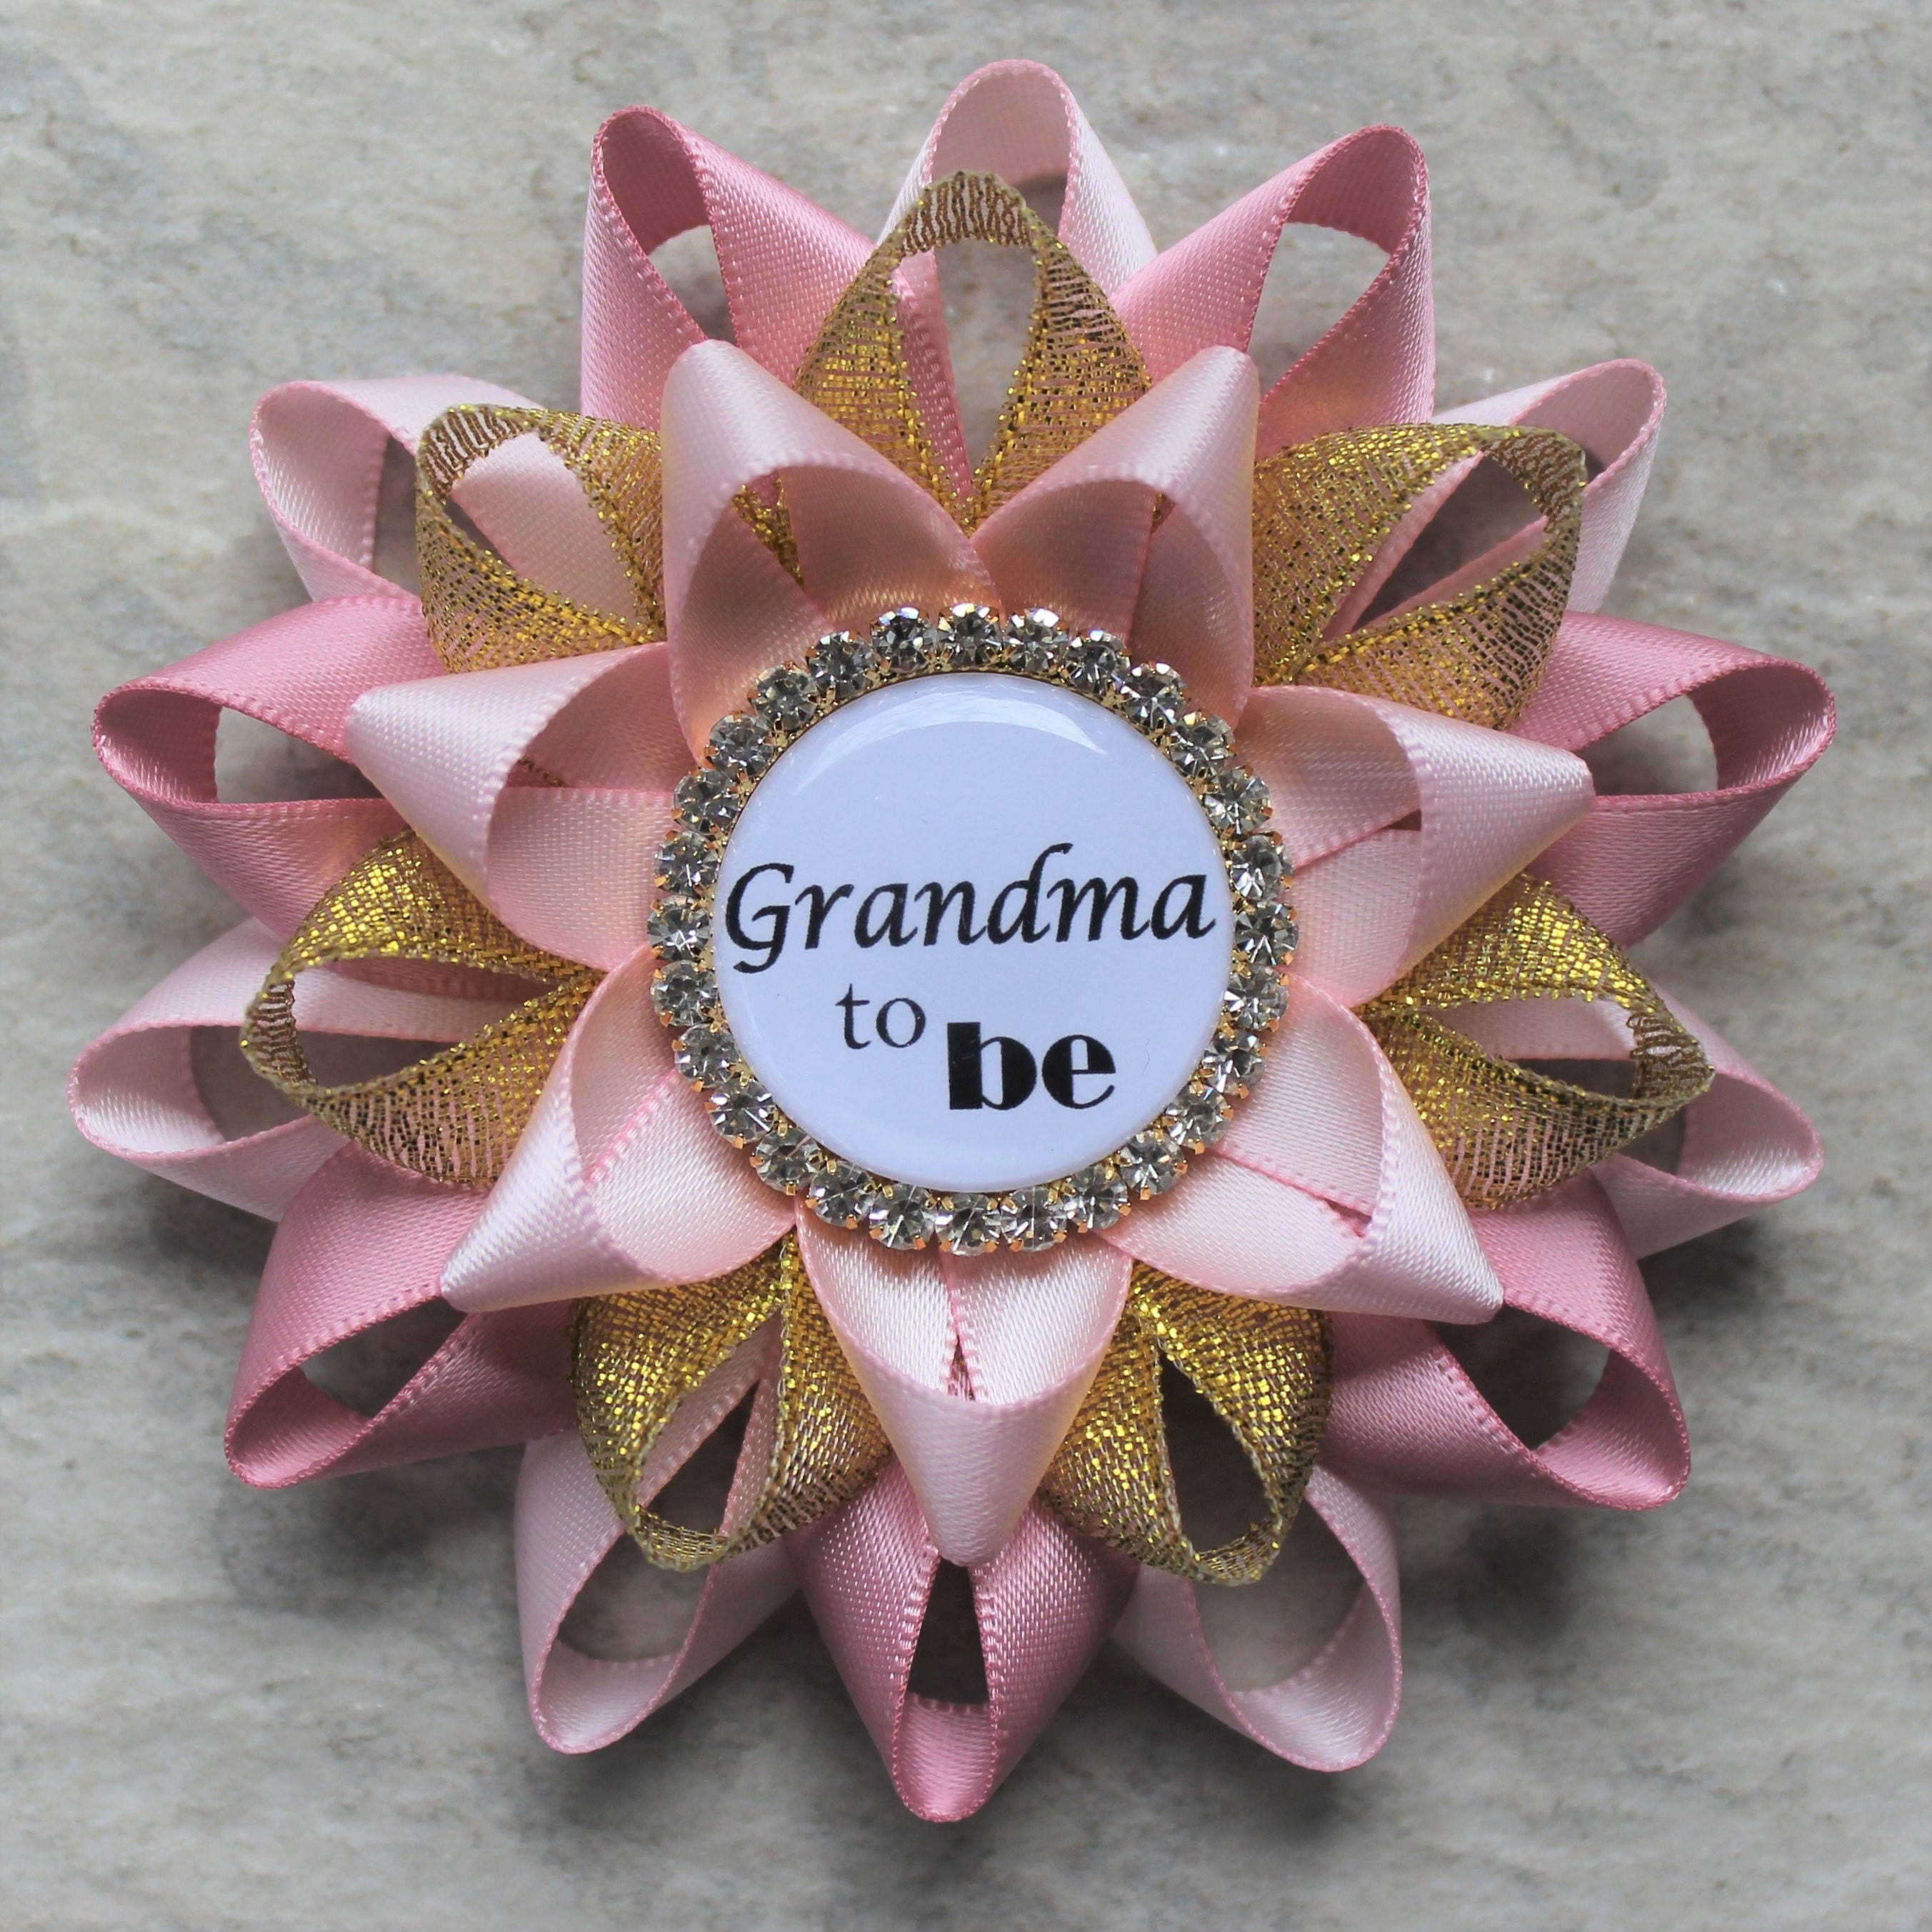 Pink and Gold Baby Shower Decorations New Grandma Gift Grandma